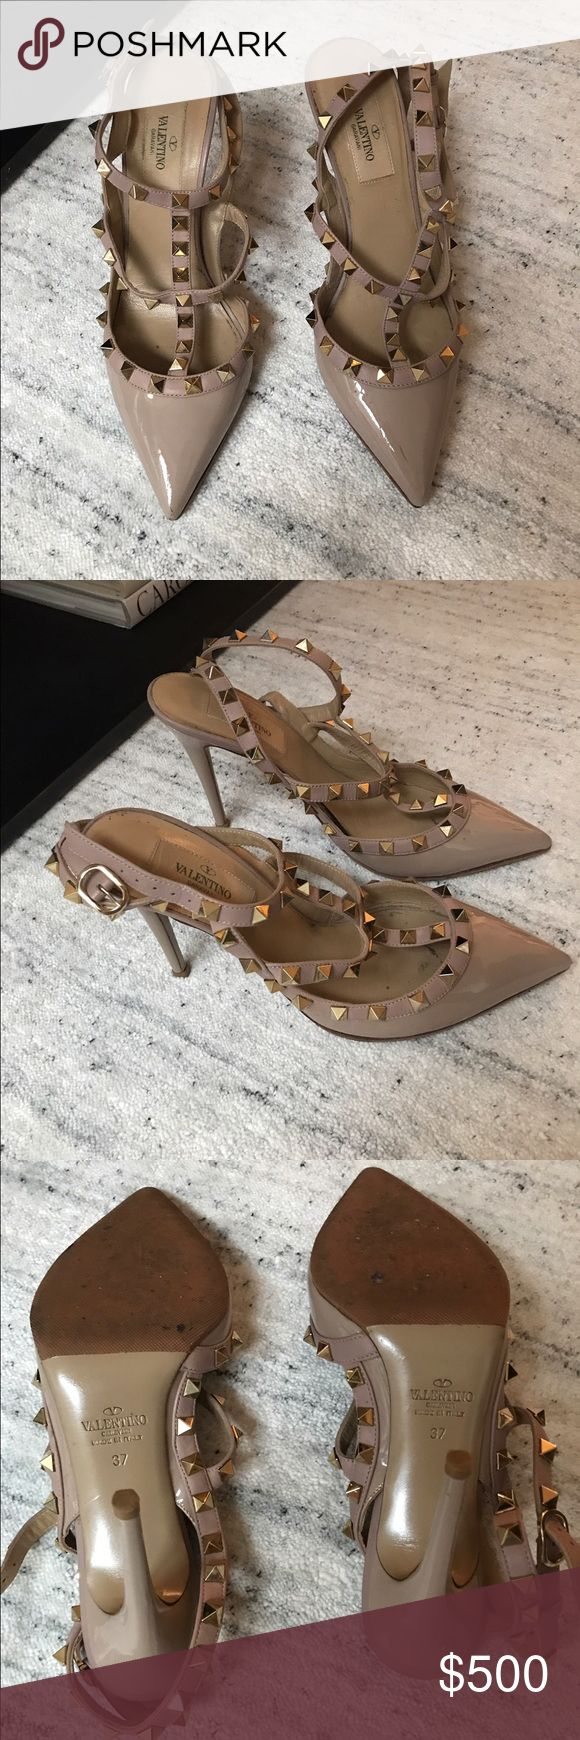 Valentino Rockstud Pumps size 37 Valentino nude patent rockstud pumps size 37 in great condition with rubber sole. 110mm Valentino Shoes Heels